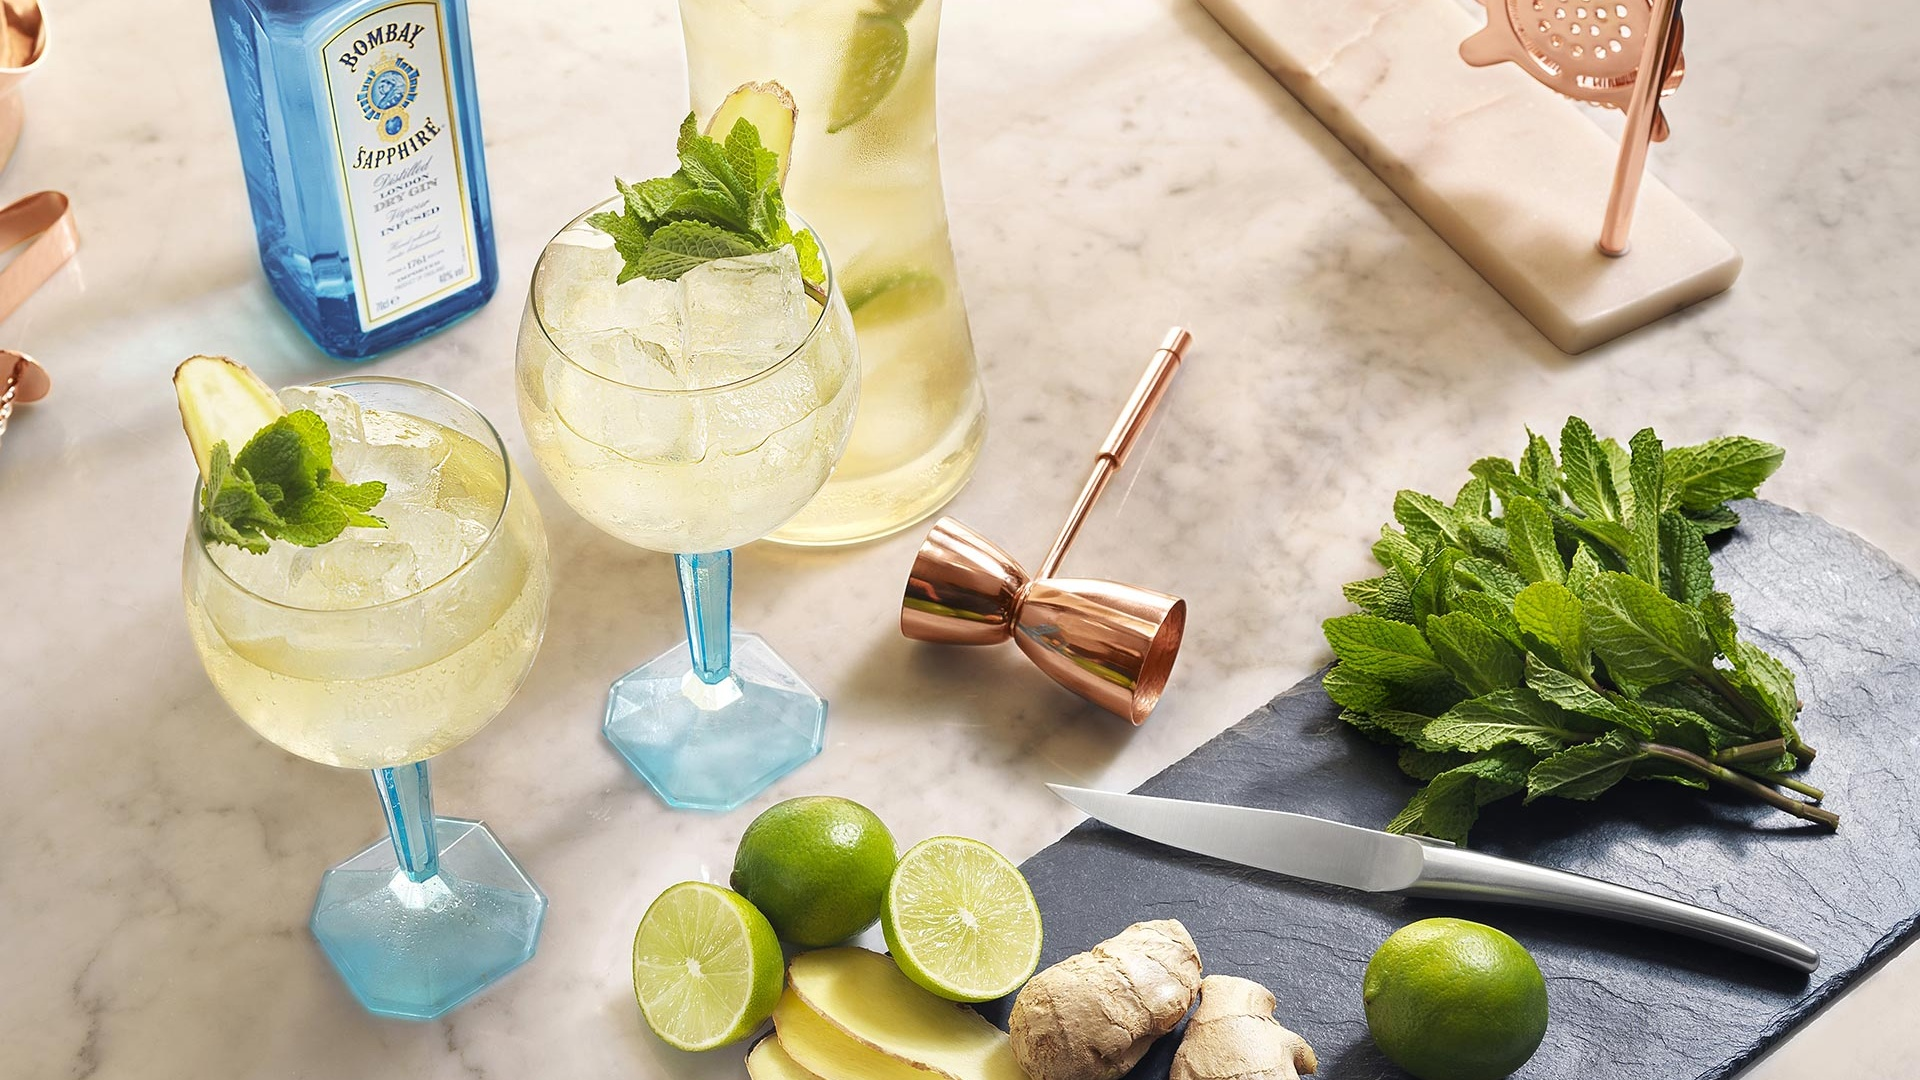 Bombay Sapphire's Laverstoke cocktail